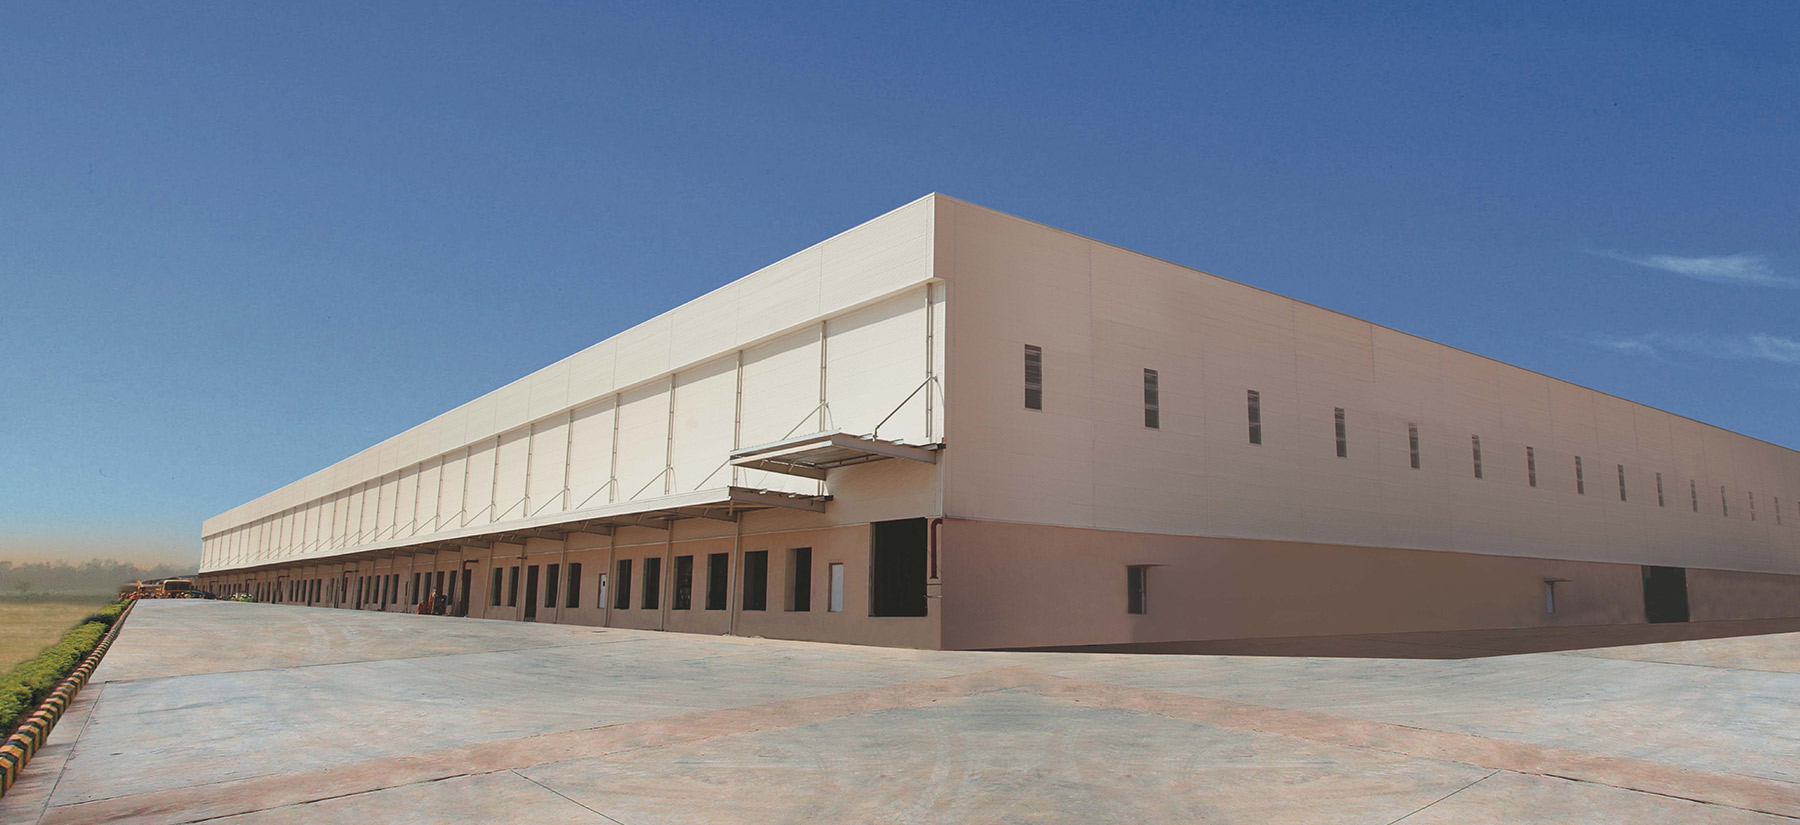 perfectly finished warehouse with colorbond coated steel